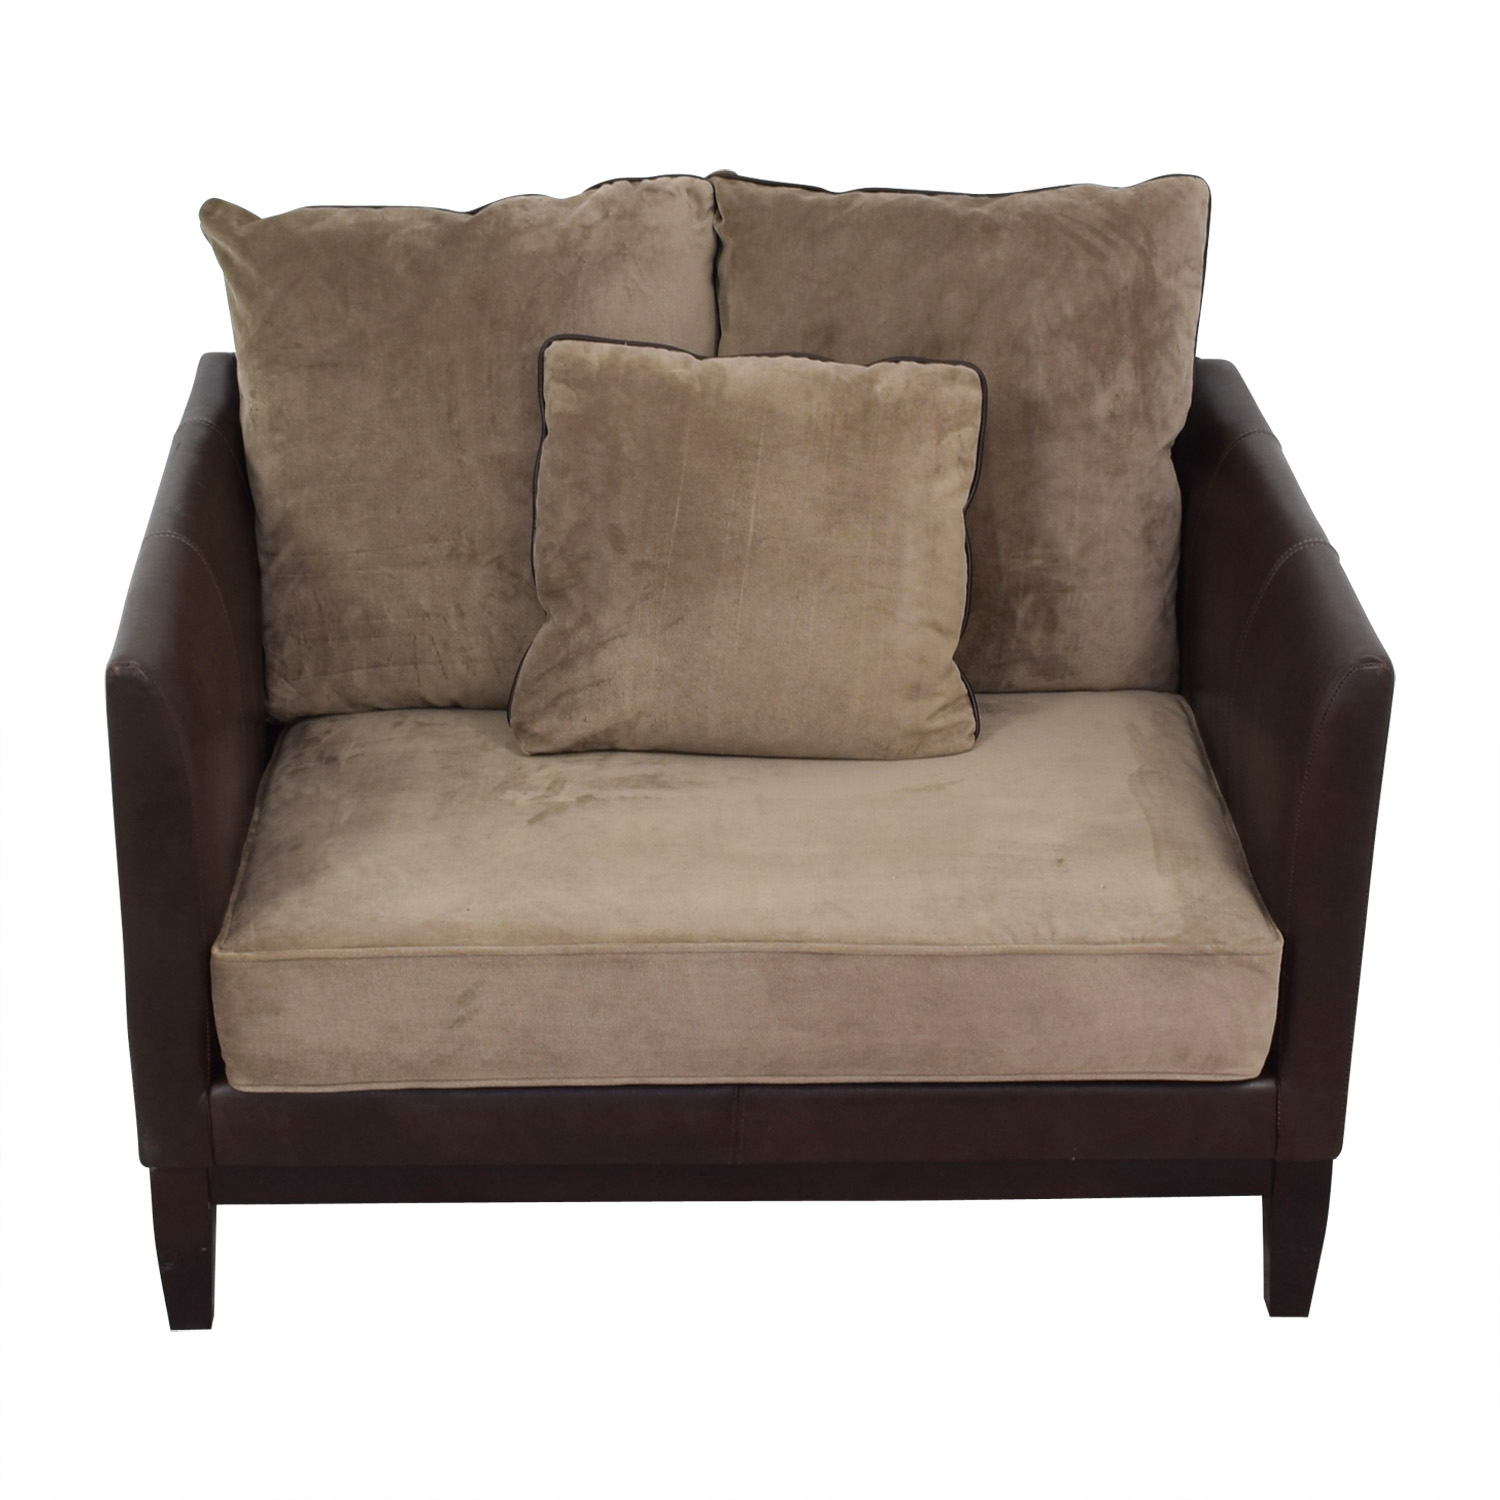 Bernhardt Bernhardt Two-Tone Brown and Beige Accent Chair coupon